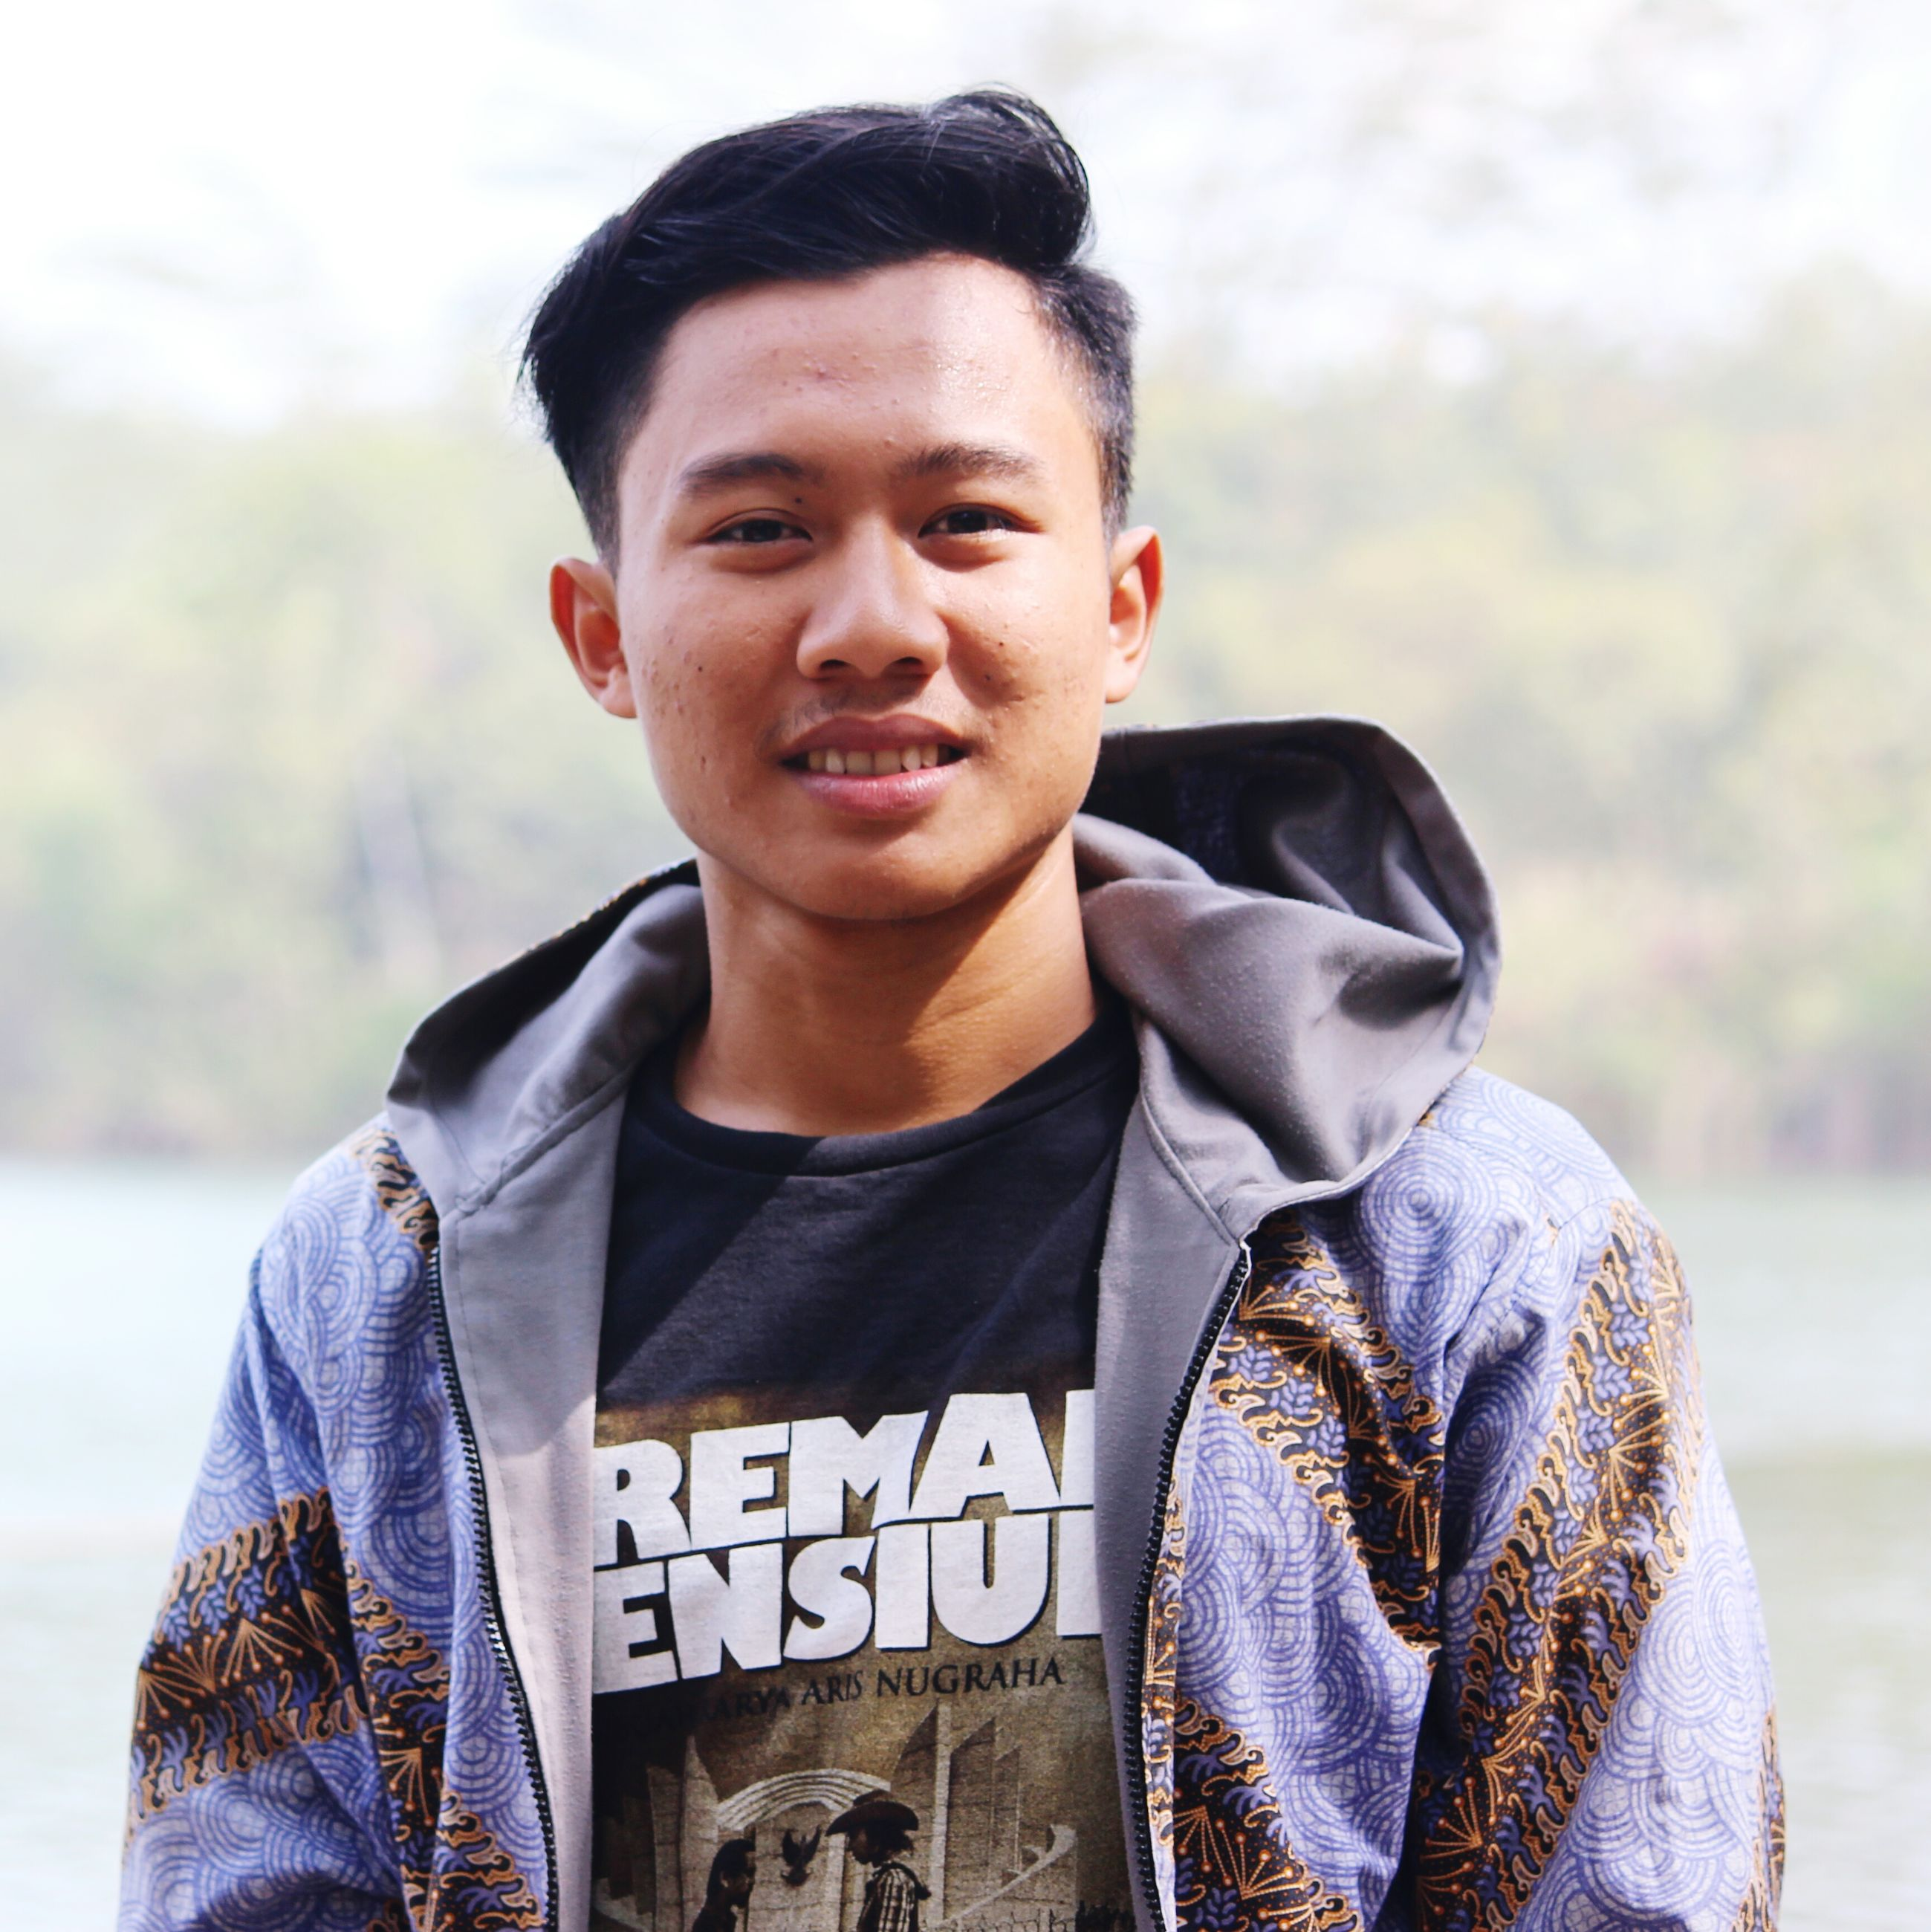 lifestyles, casual clothing, person, looking at camera, young adult, portrait, leisure activity, front view, young men, waist up, focus on foreground, standing, smiling, three quarter length, jacket, warm clothing, headshot